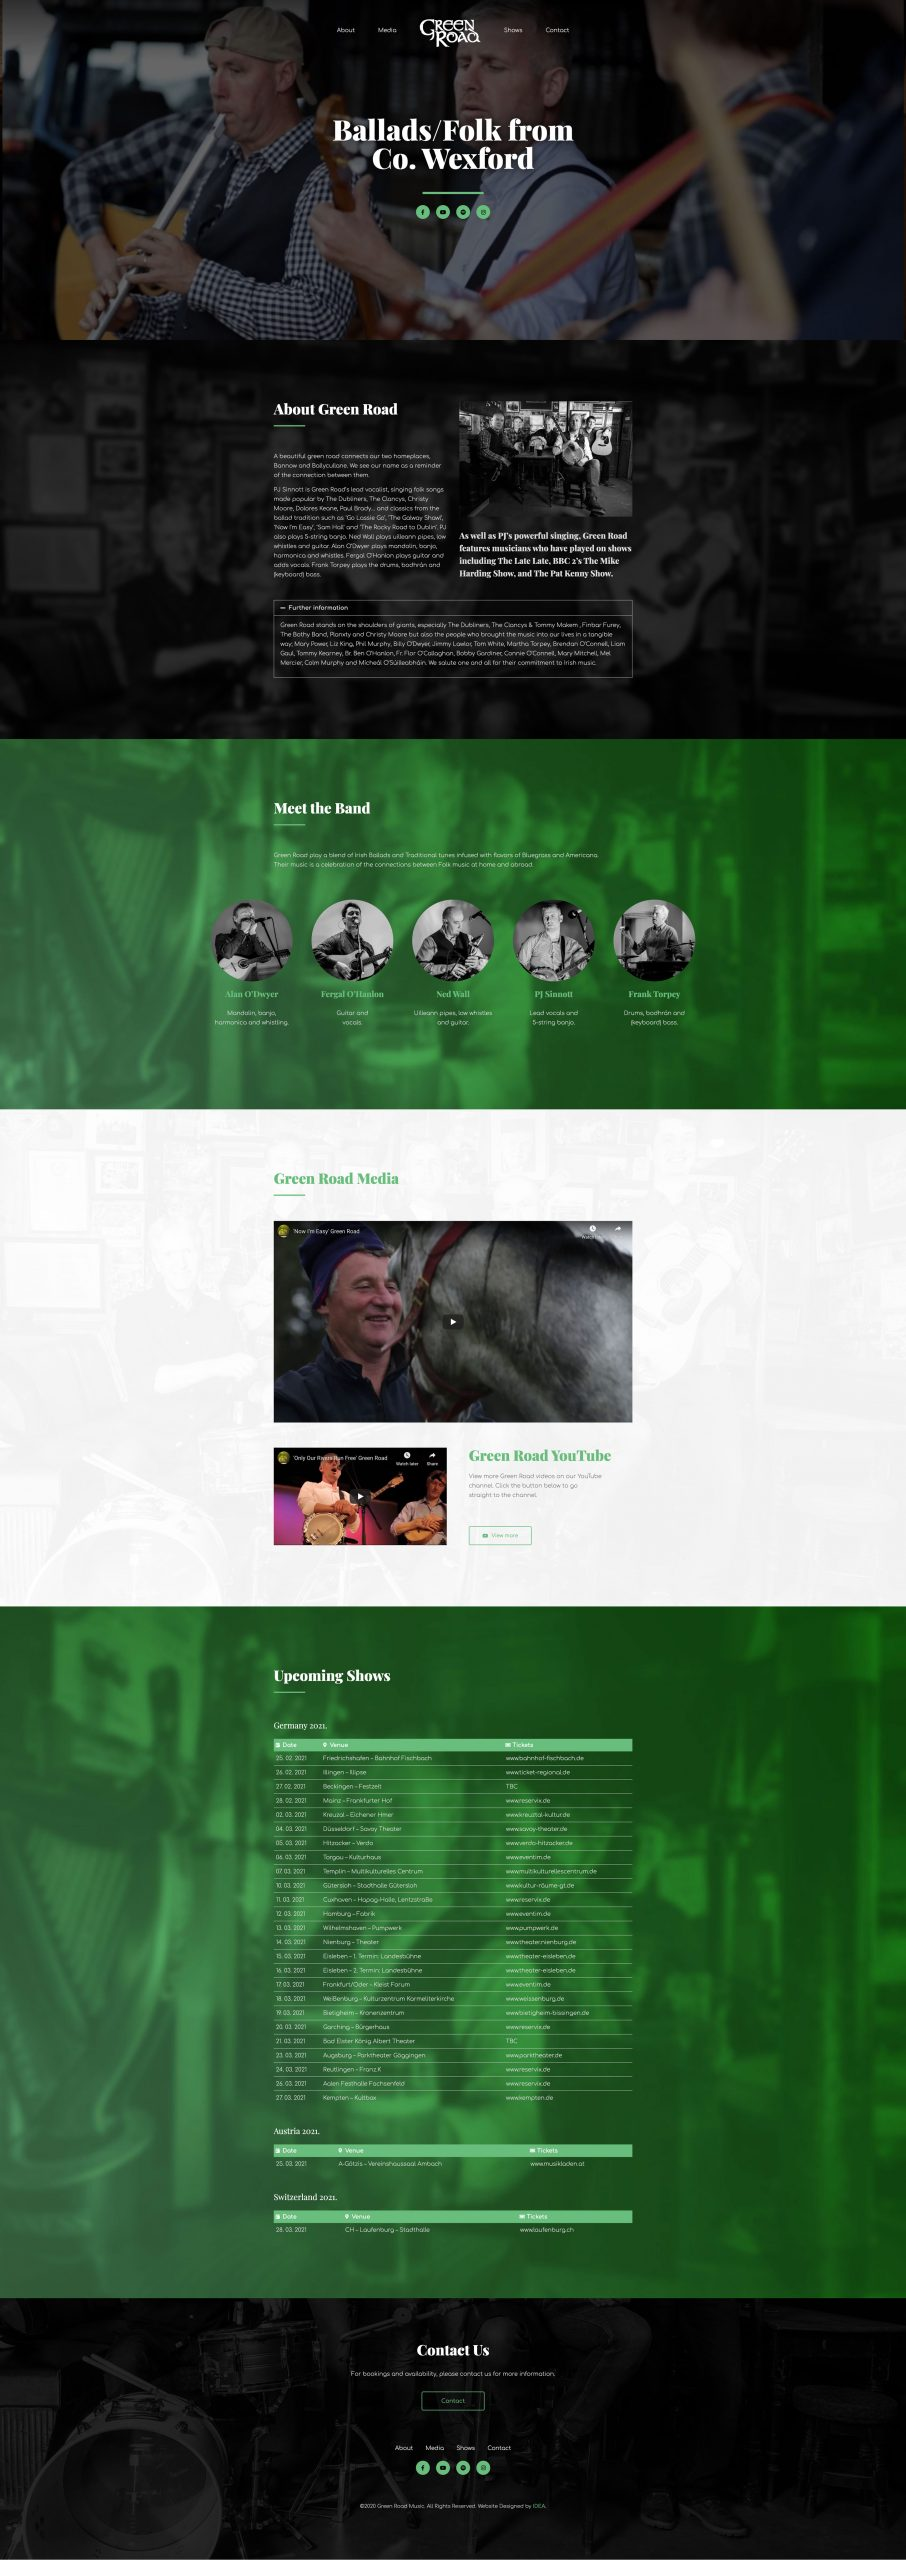 greenroad music homepage website designer idea design sheffield 8